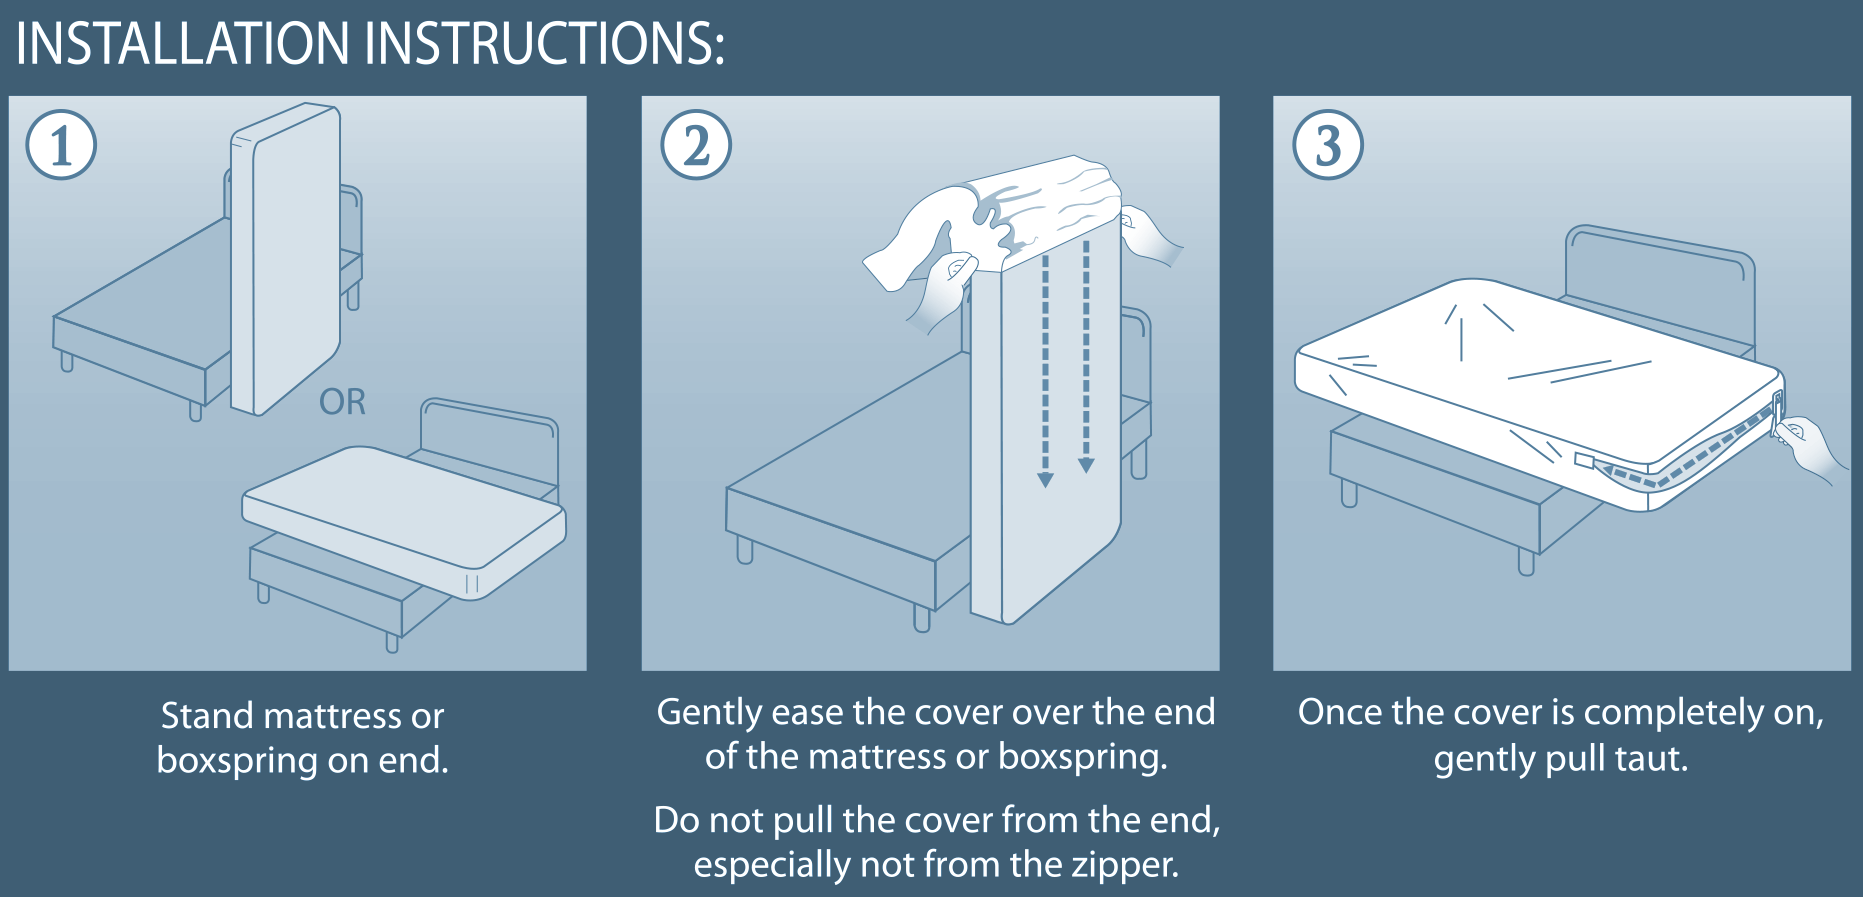 How to Install a Bed Bug Mattress Cover